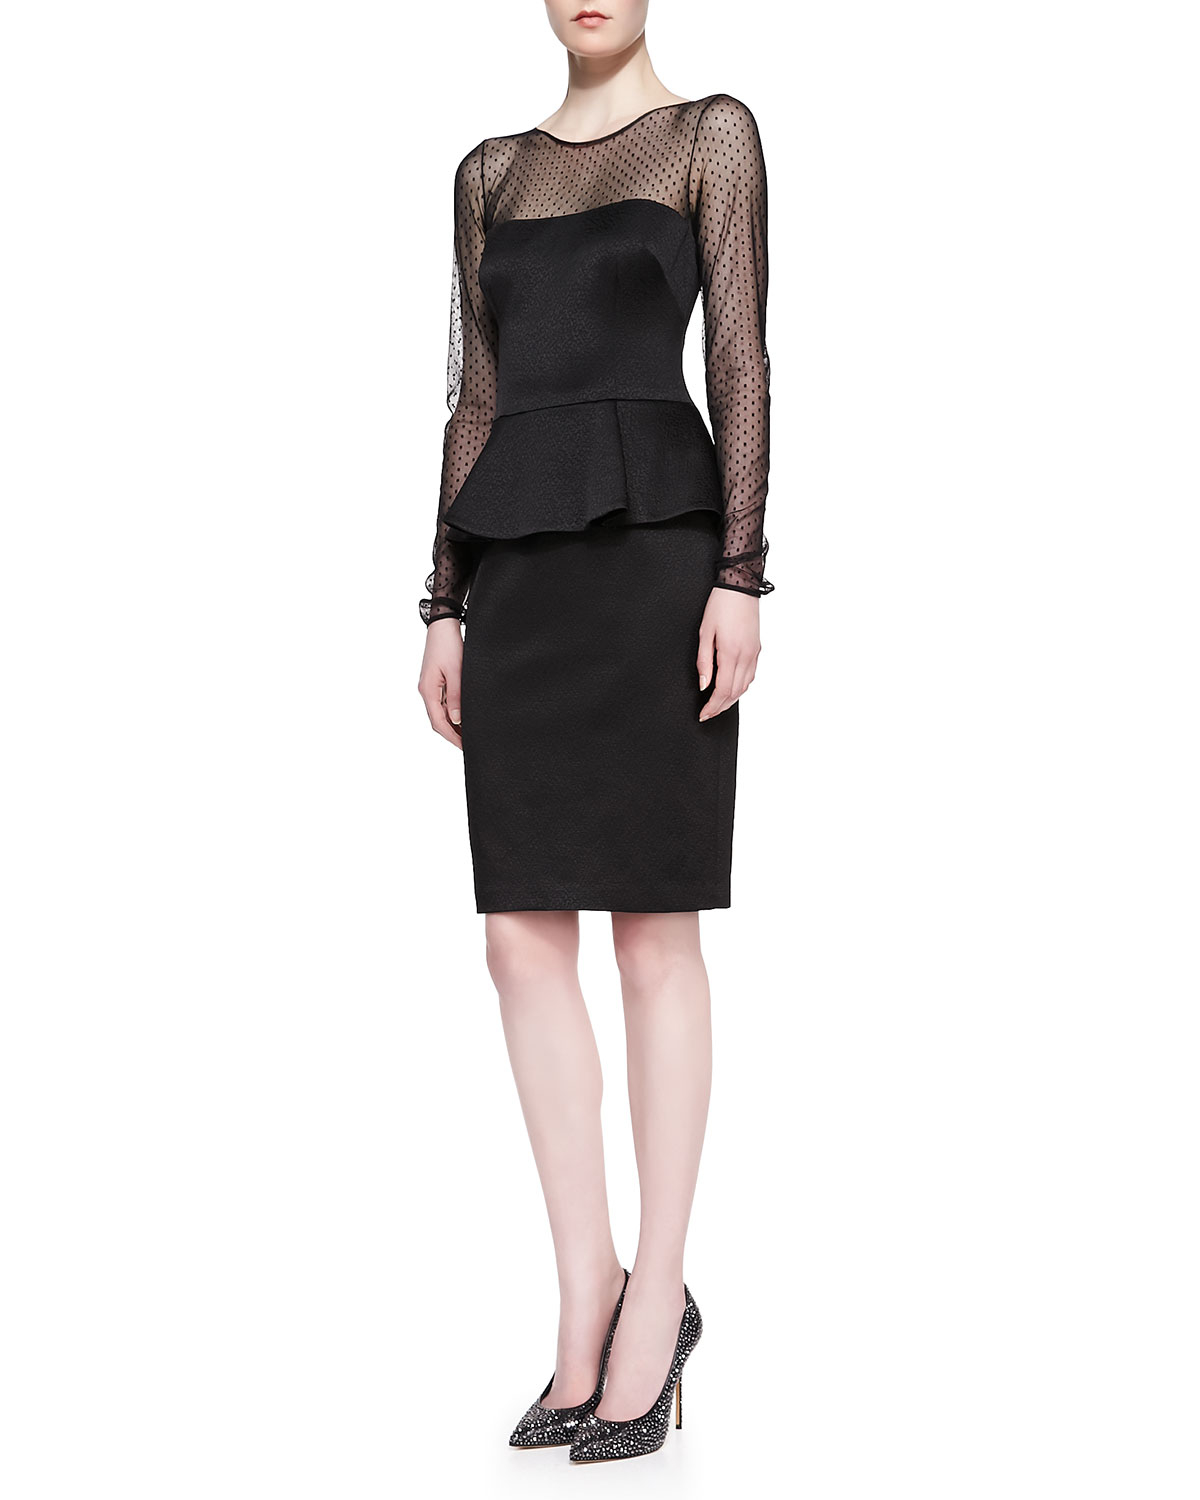 Black dress neiman marcus - Gallery Previously Sold At Neiman Marcus Women S Black Cocktail Dresses